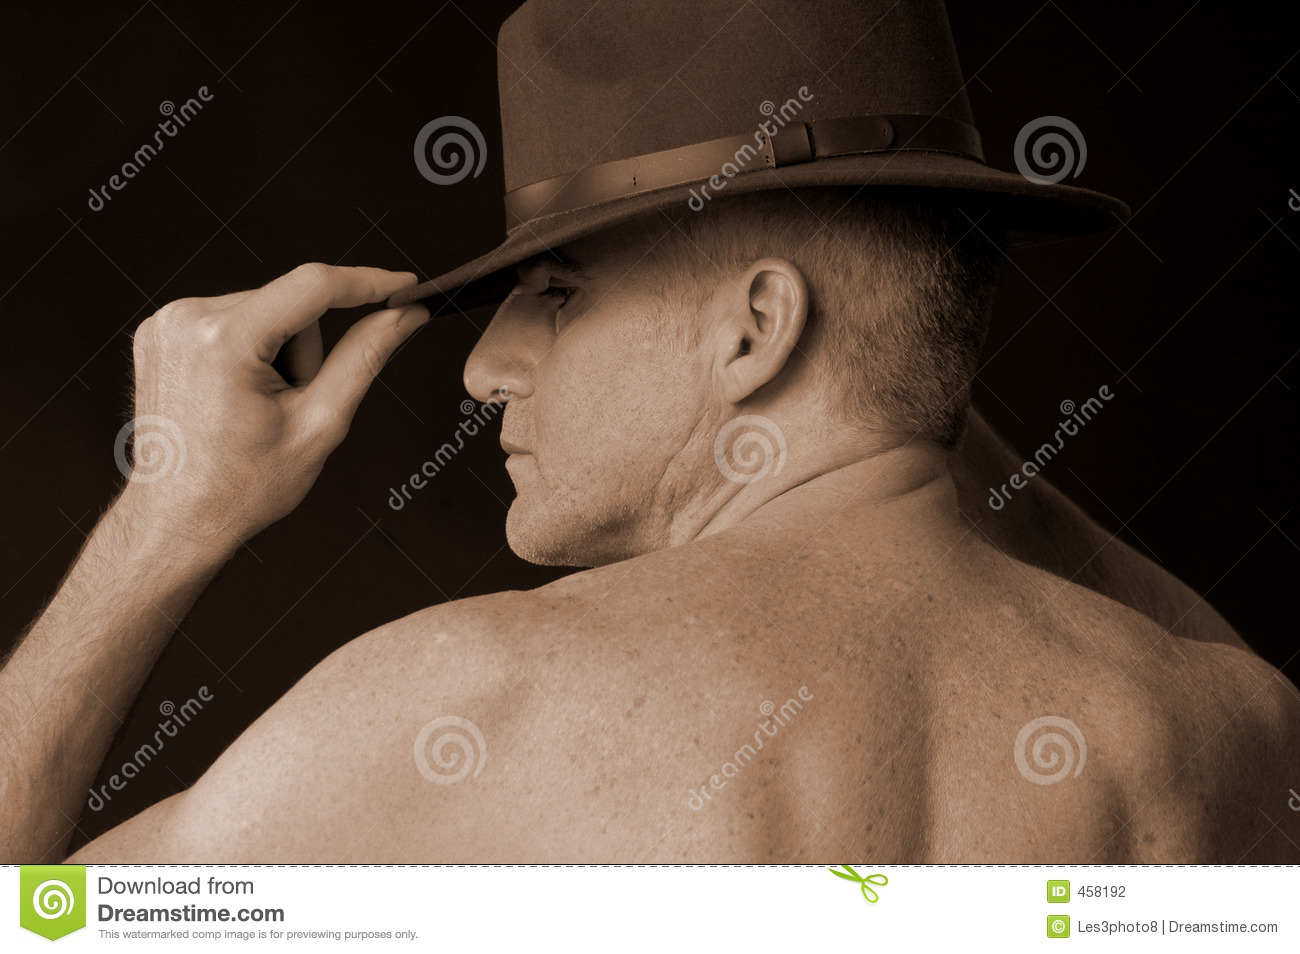 Male with hat